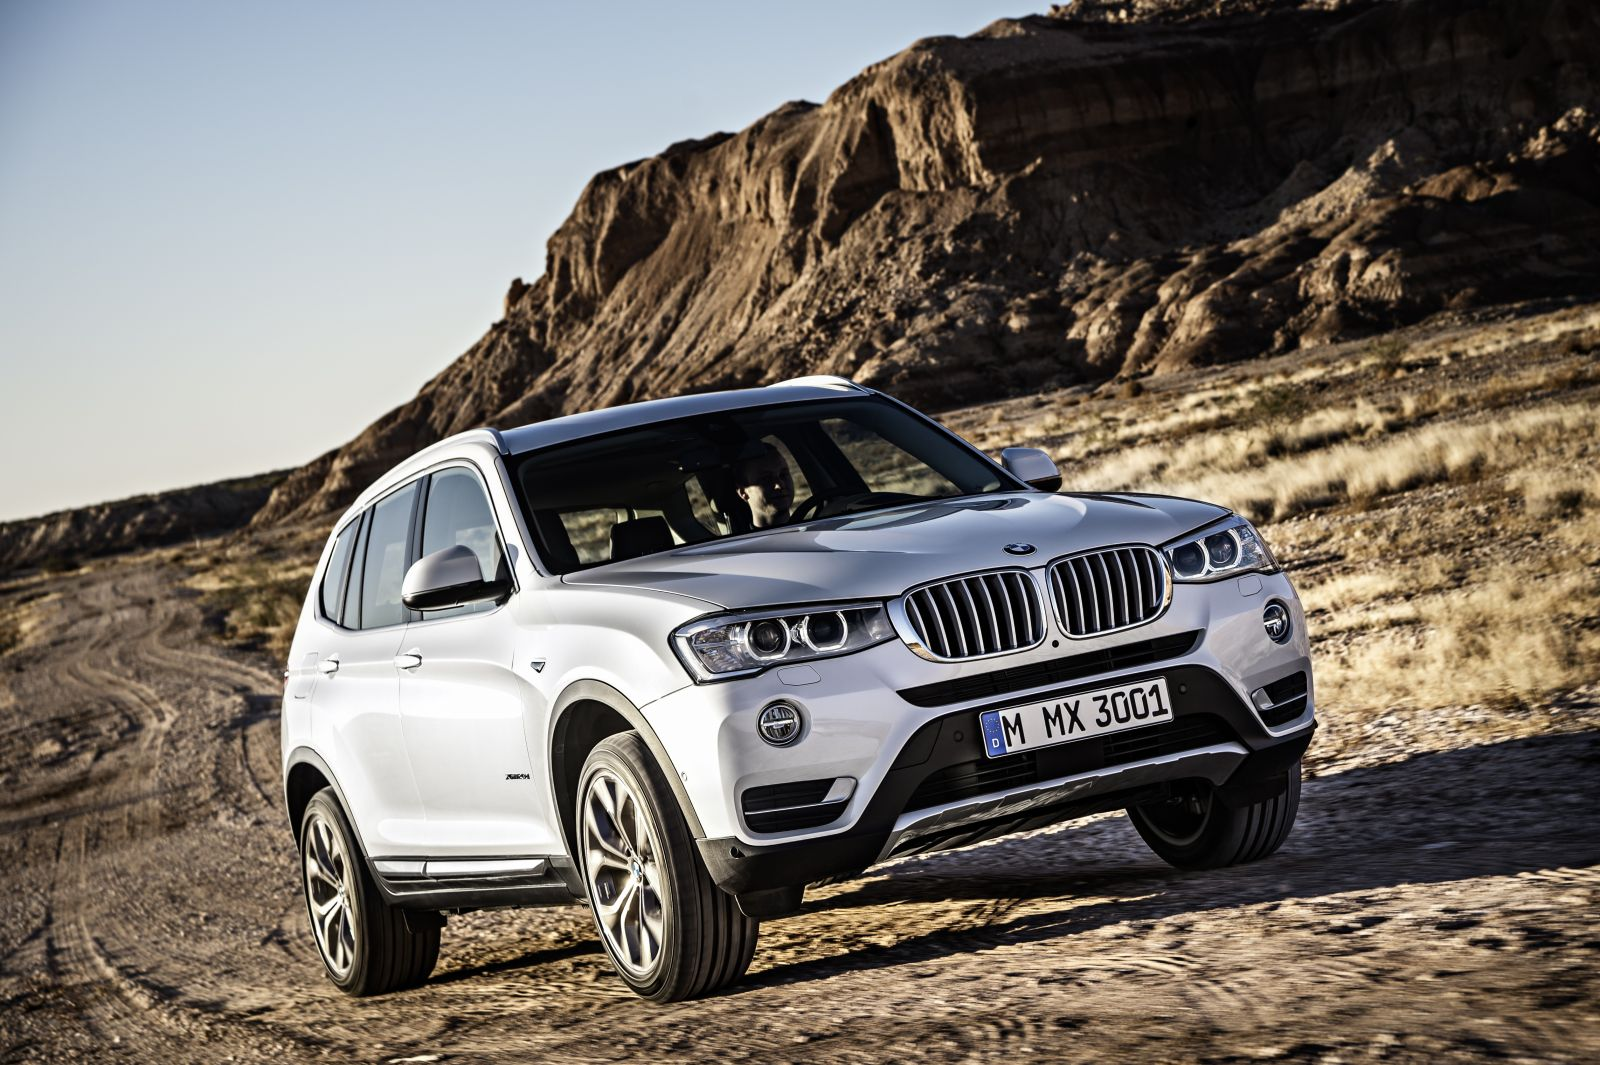 The BMW X3 model, which is produced at the company's Spartanburg plant, experienced a 42.9% increase in sales in the United States during the month of March. (Photo/Provided)